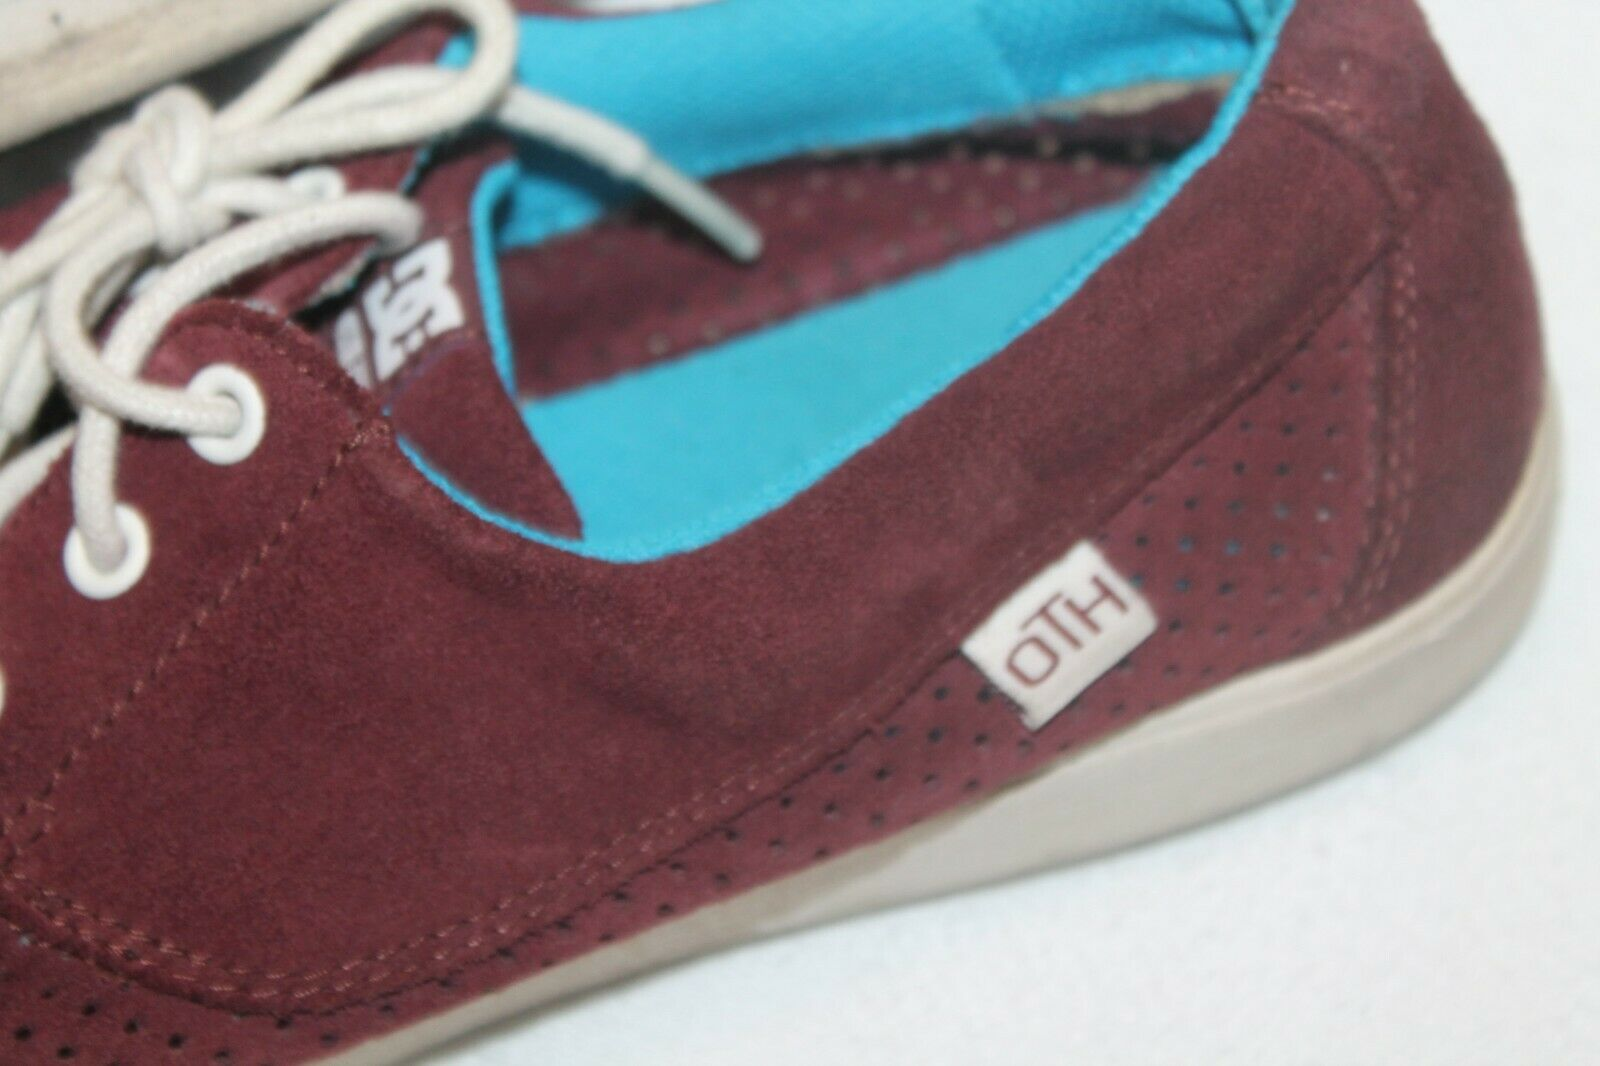 Men's OTH Pool LE Shoes 320346 DC Shoes SIZE 8 MENS burgundy perforated suede